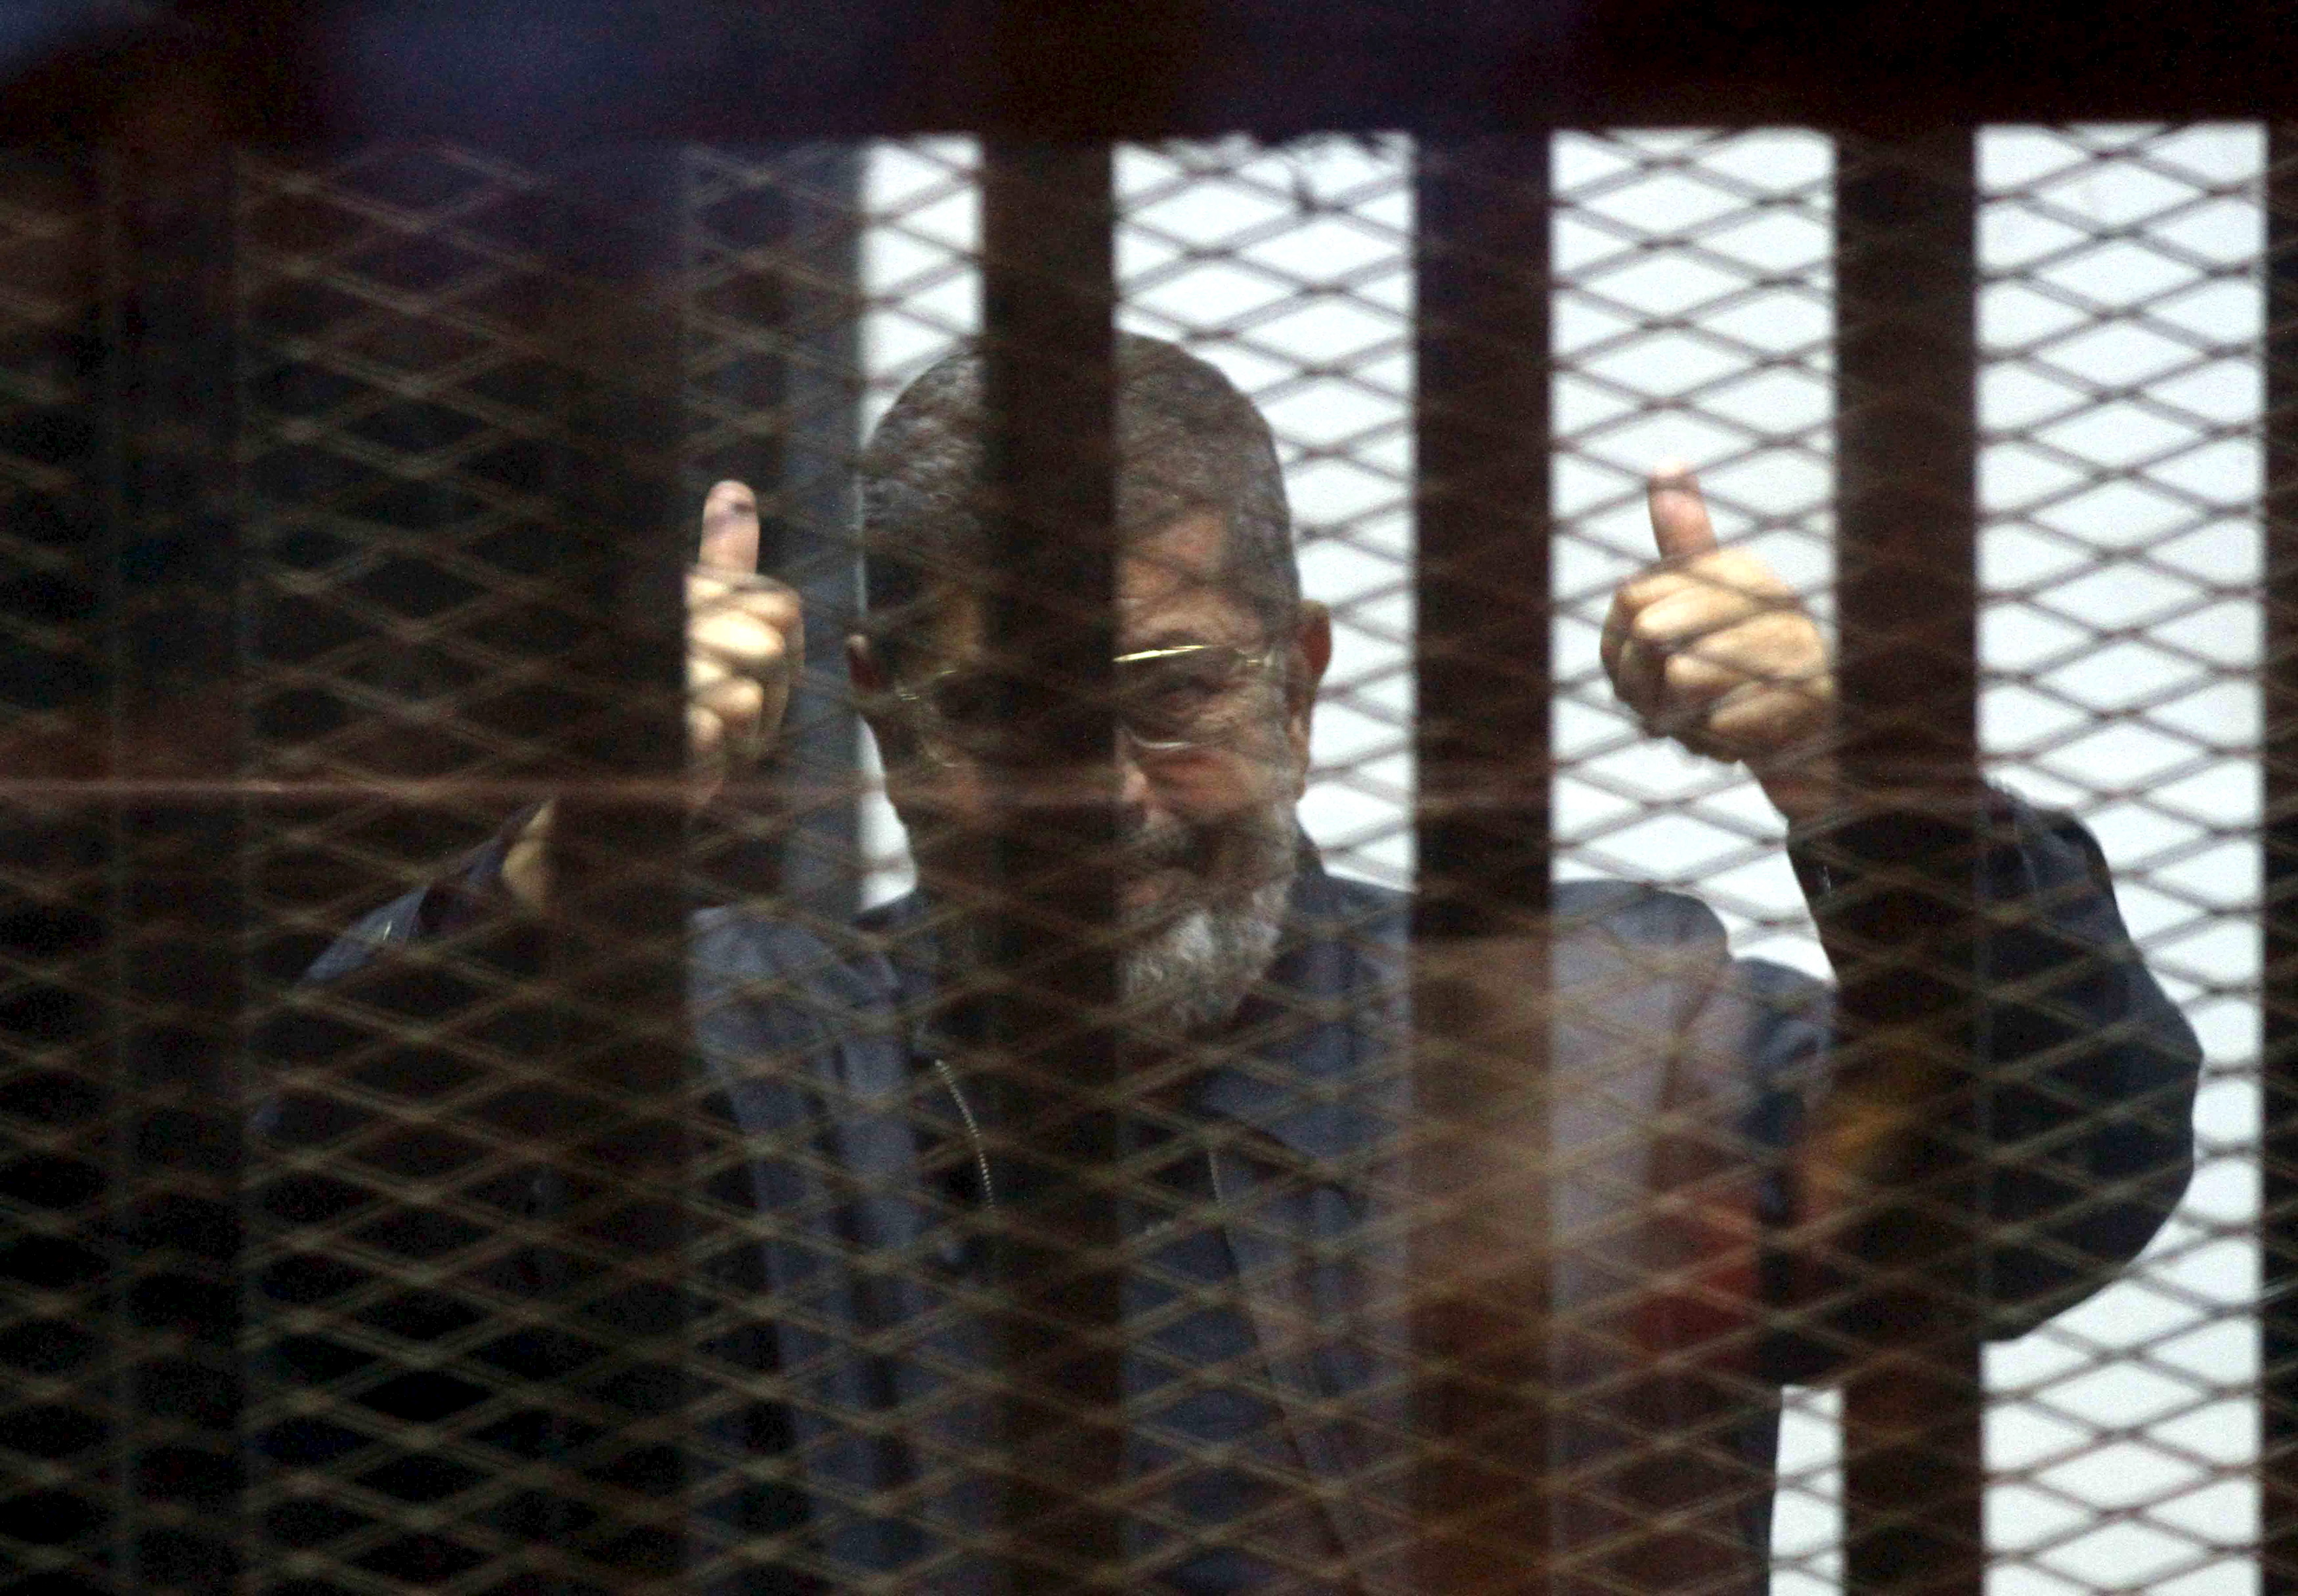 Ousted Egyptian President Mohamed Mursi is seen behind bars during his trial at a court in Cairo, April 30, 2015. REUTERS/Al Youm Al Saabi Newspaper. EGYPT OUT. NO COMMERCIAL OR EDITORIAL SALES IN EGYPT. TPX IMAGES OF THE DAY - GF10000078720